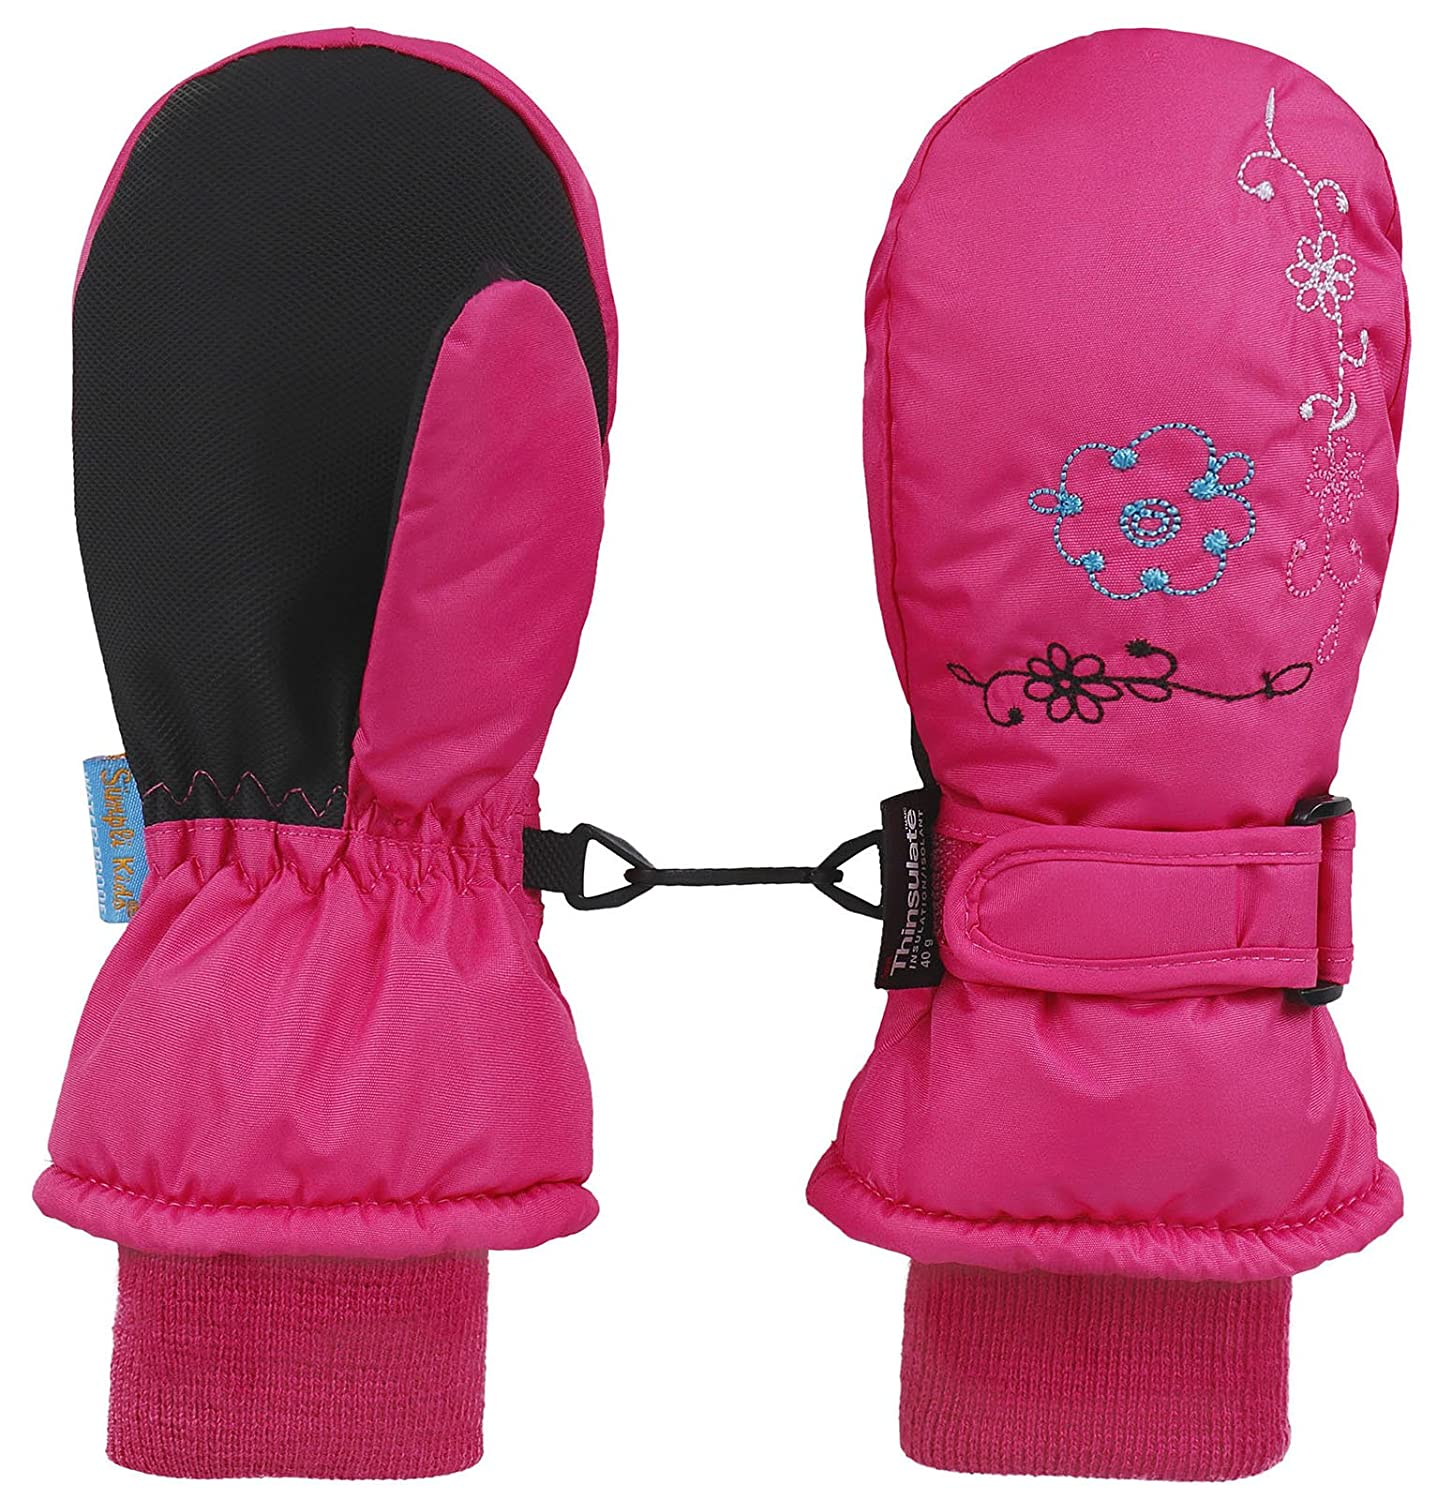 Livingston Children Thinsulate Lining Waterproof Winter Sports Snow Ski Mittens